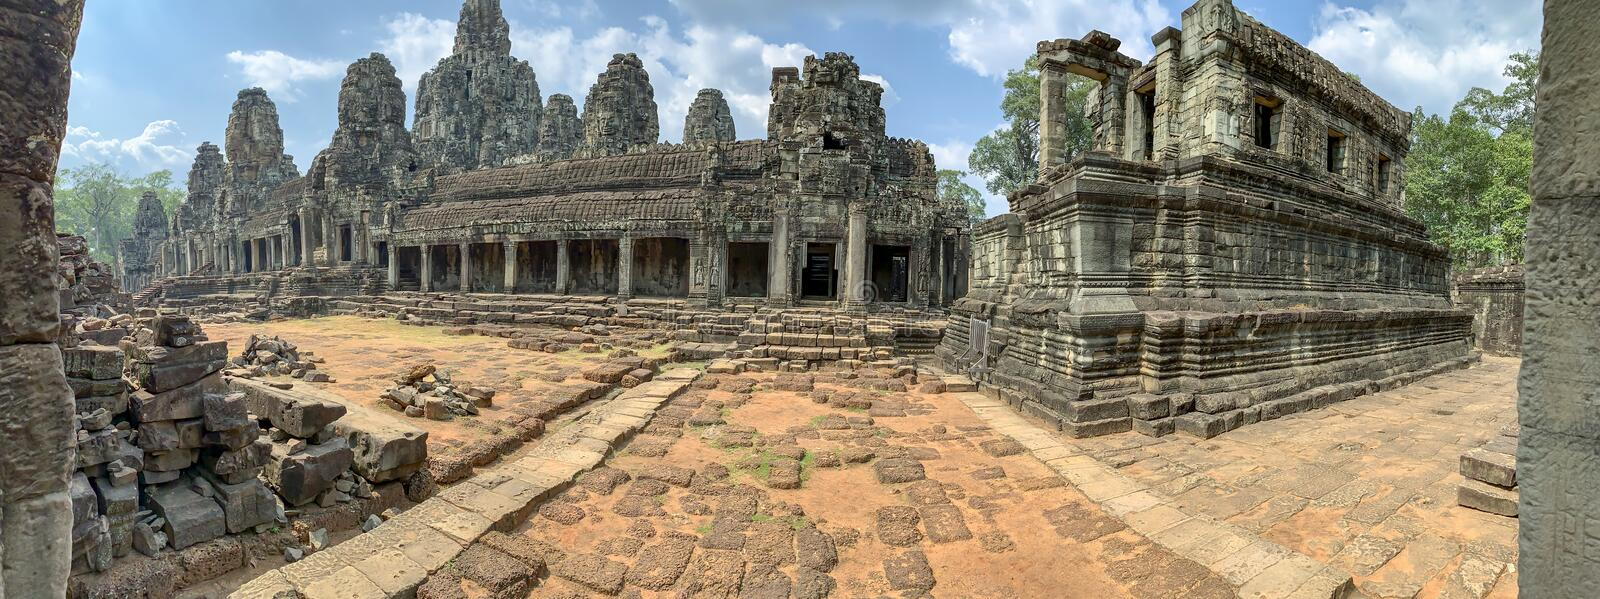 Courtyard in Bayon Temple of Angkor Thom in Cambodia stock images